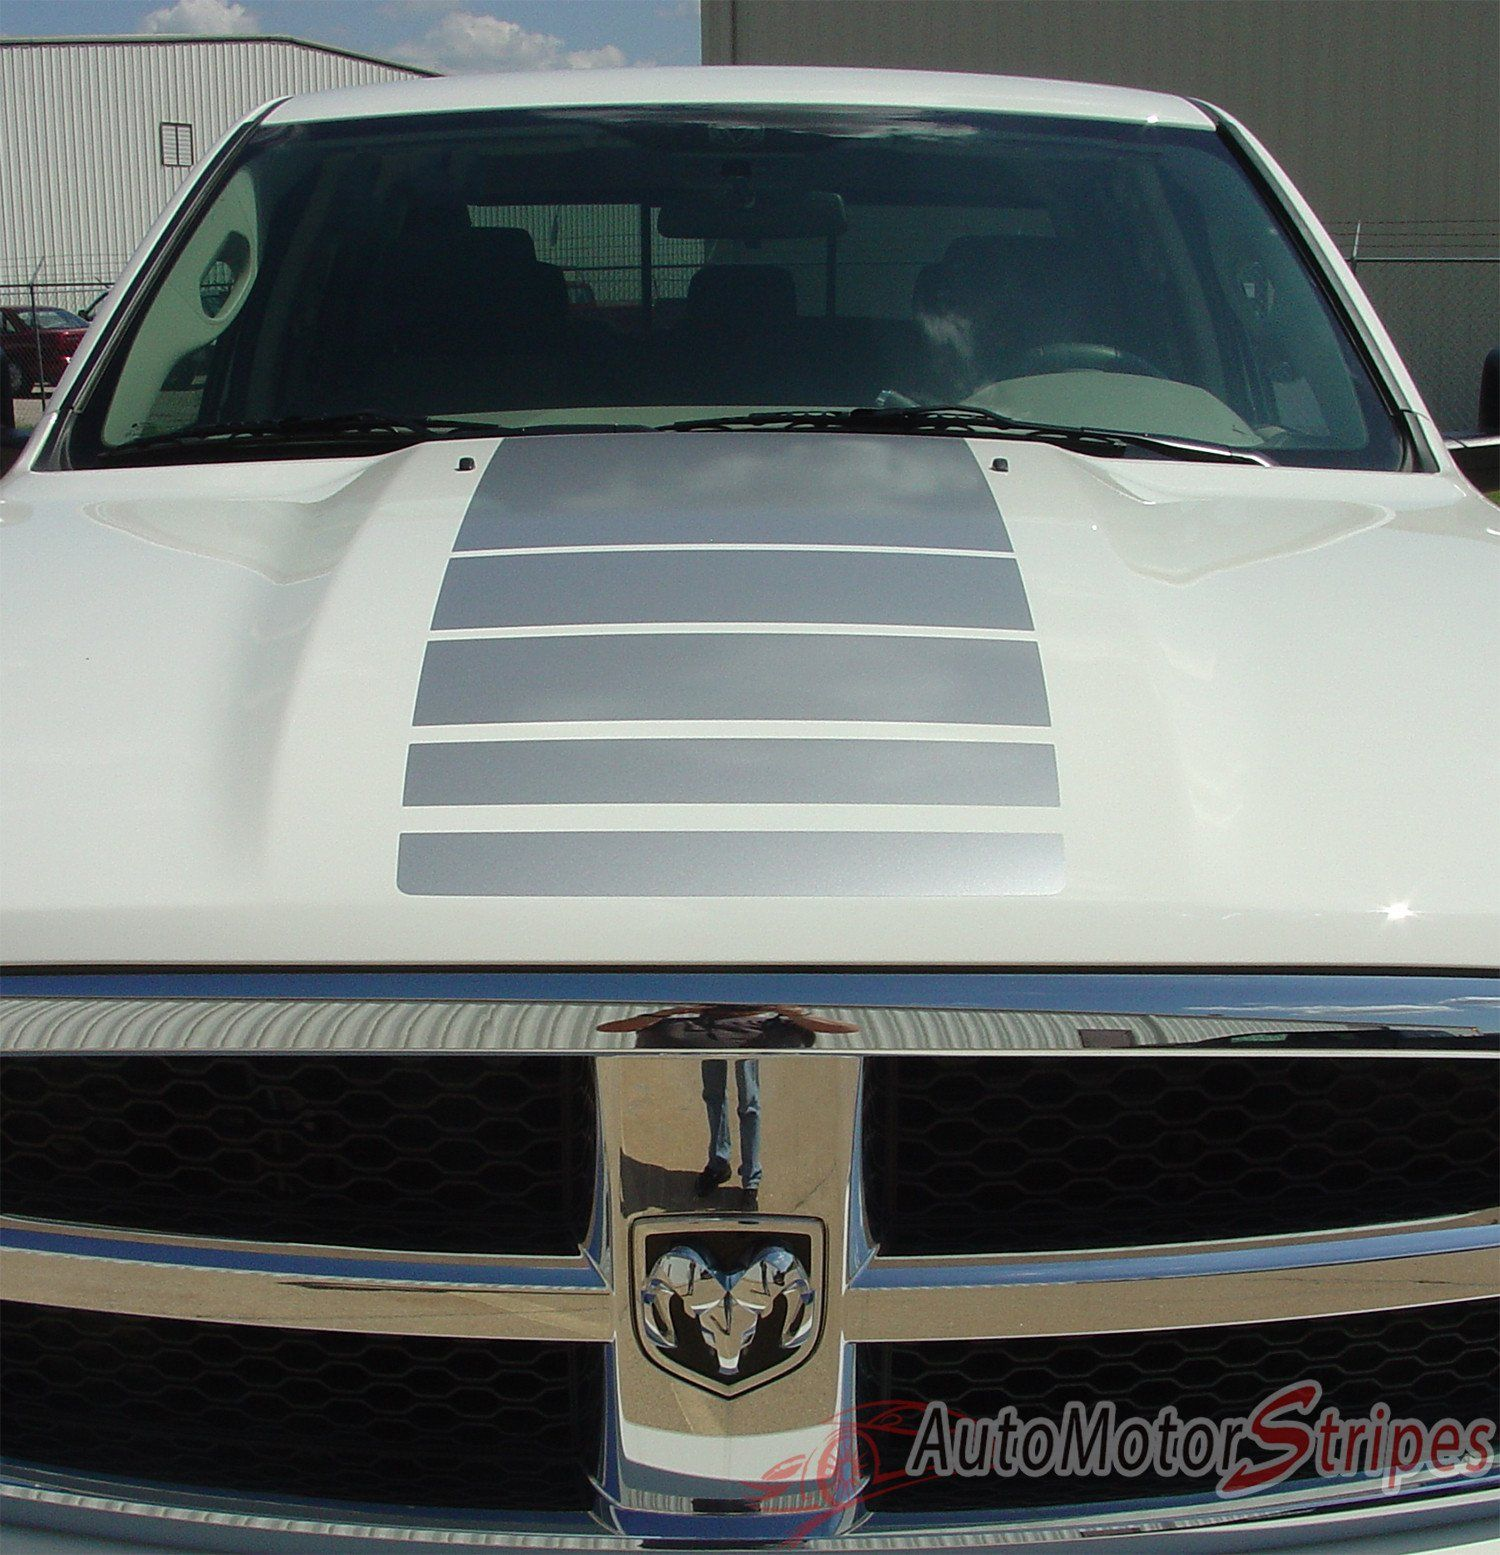 Dodge ram hood stripes truck power strobe decals and rear bed vinyl graphic stripe decal by ams fits years 2009 2010 2011 2012 2013 2014 2015 2016 2017